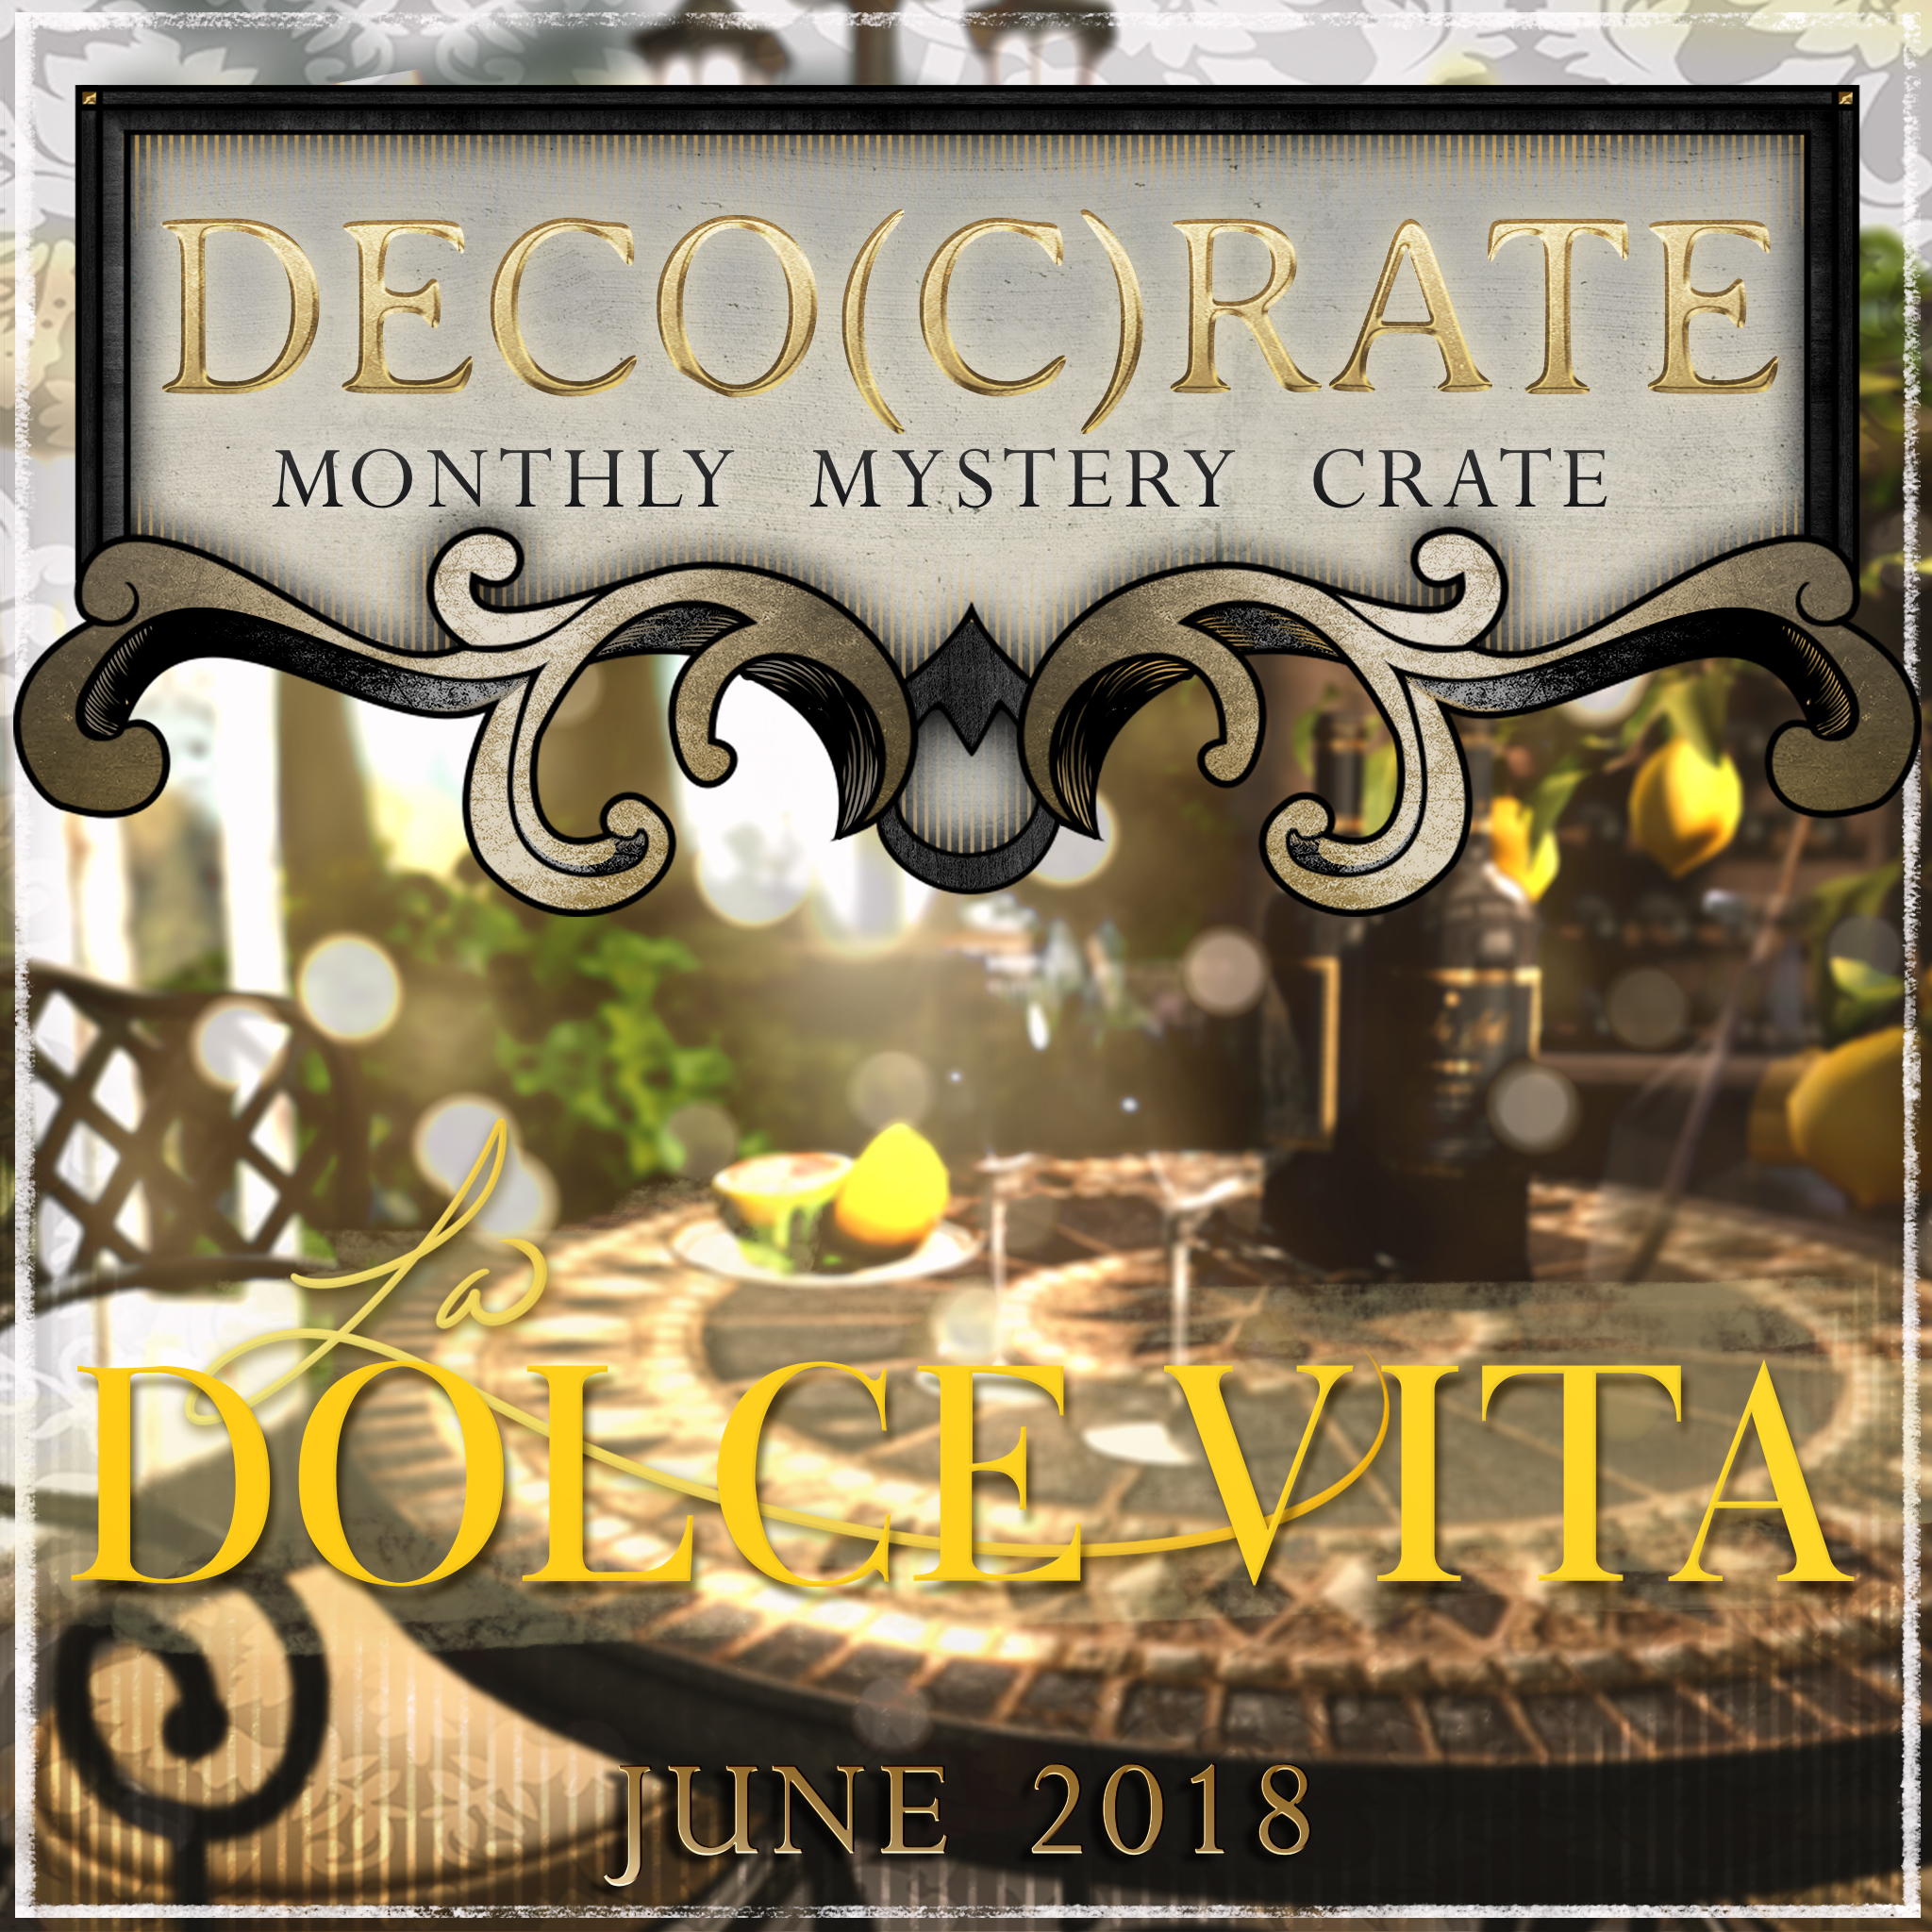 Deco(c)rate celebrates La Dolce Vita!